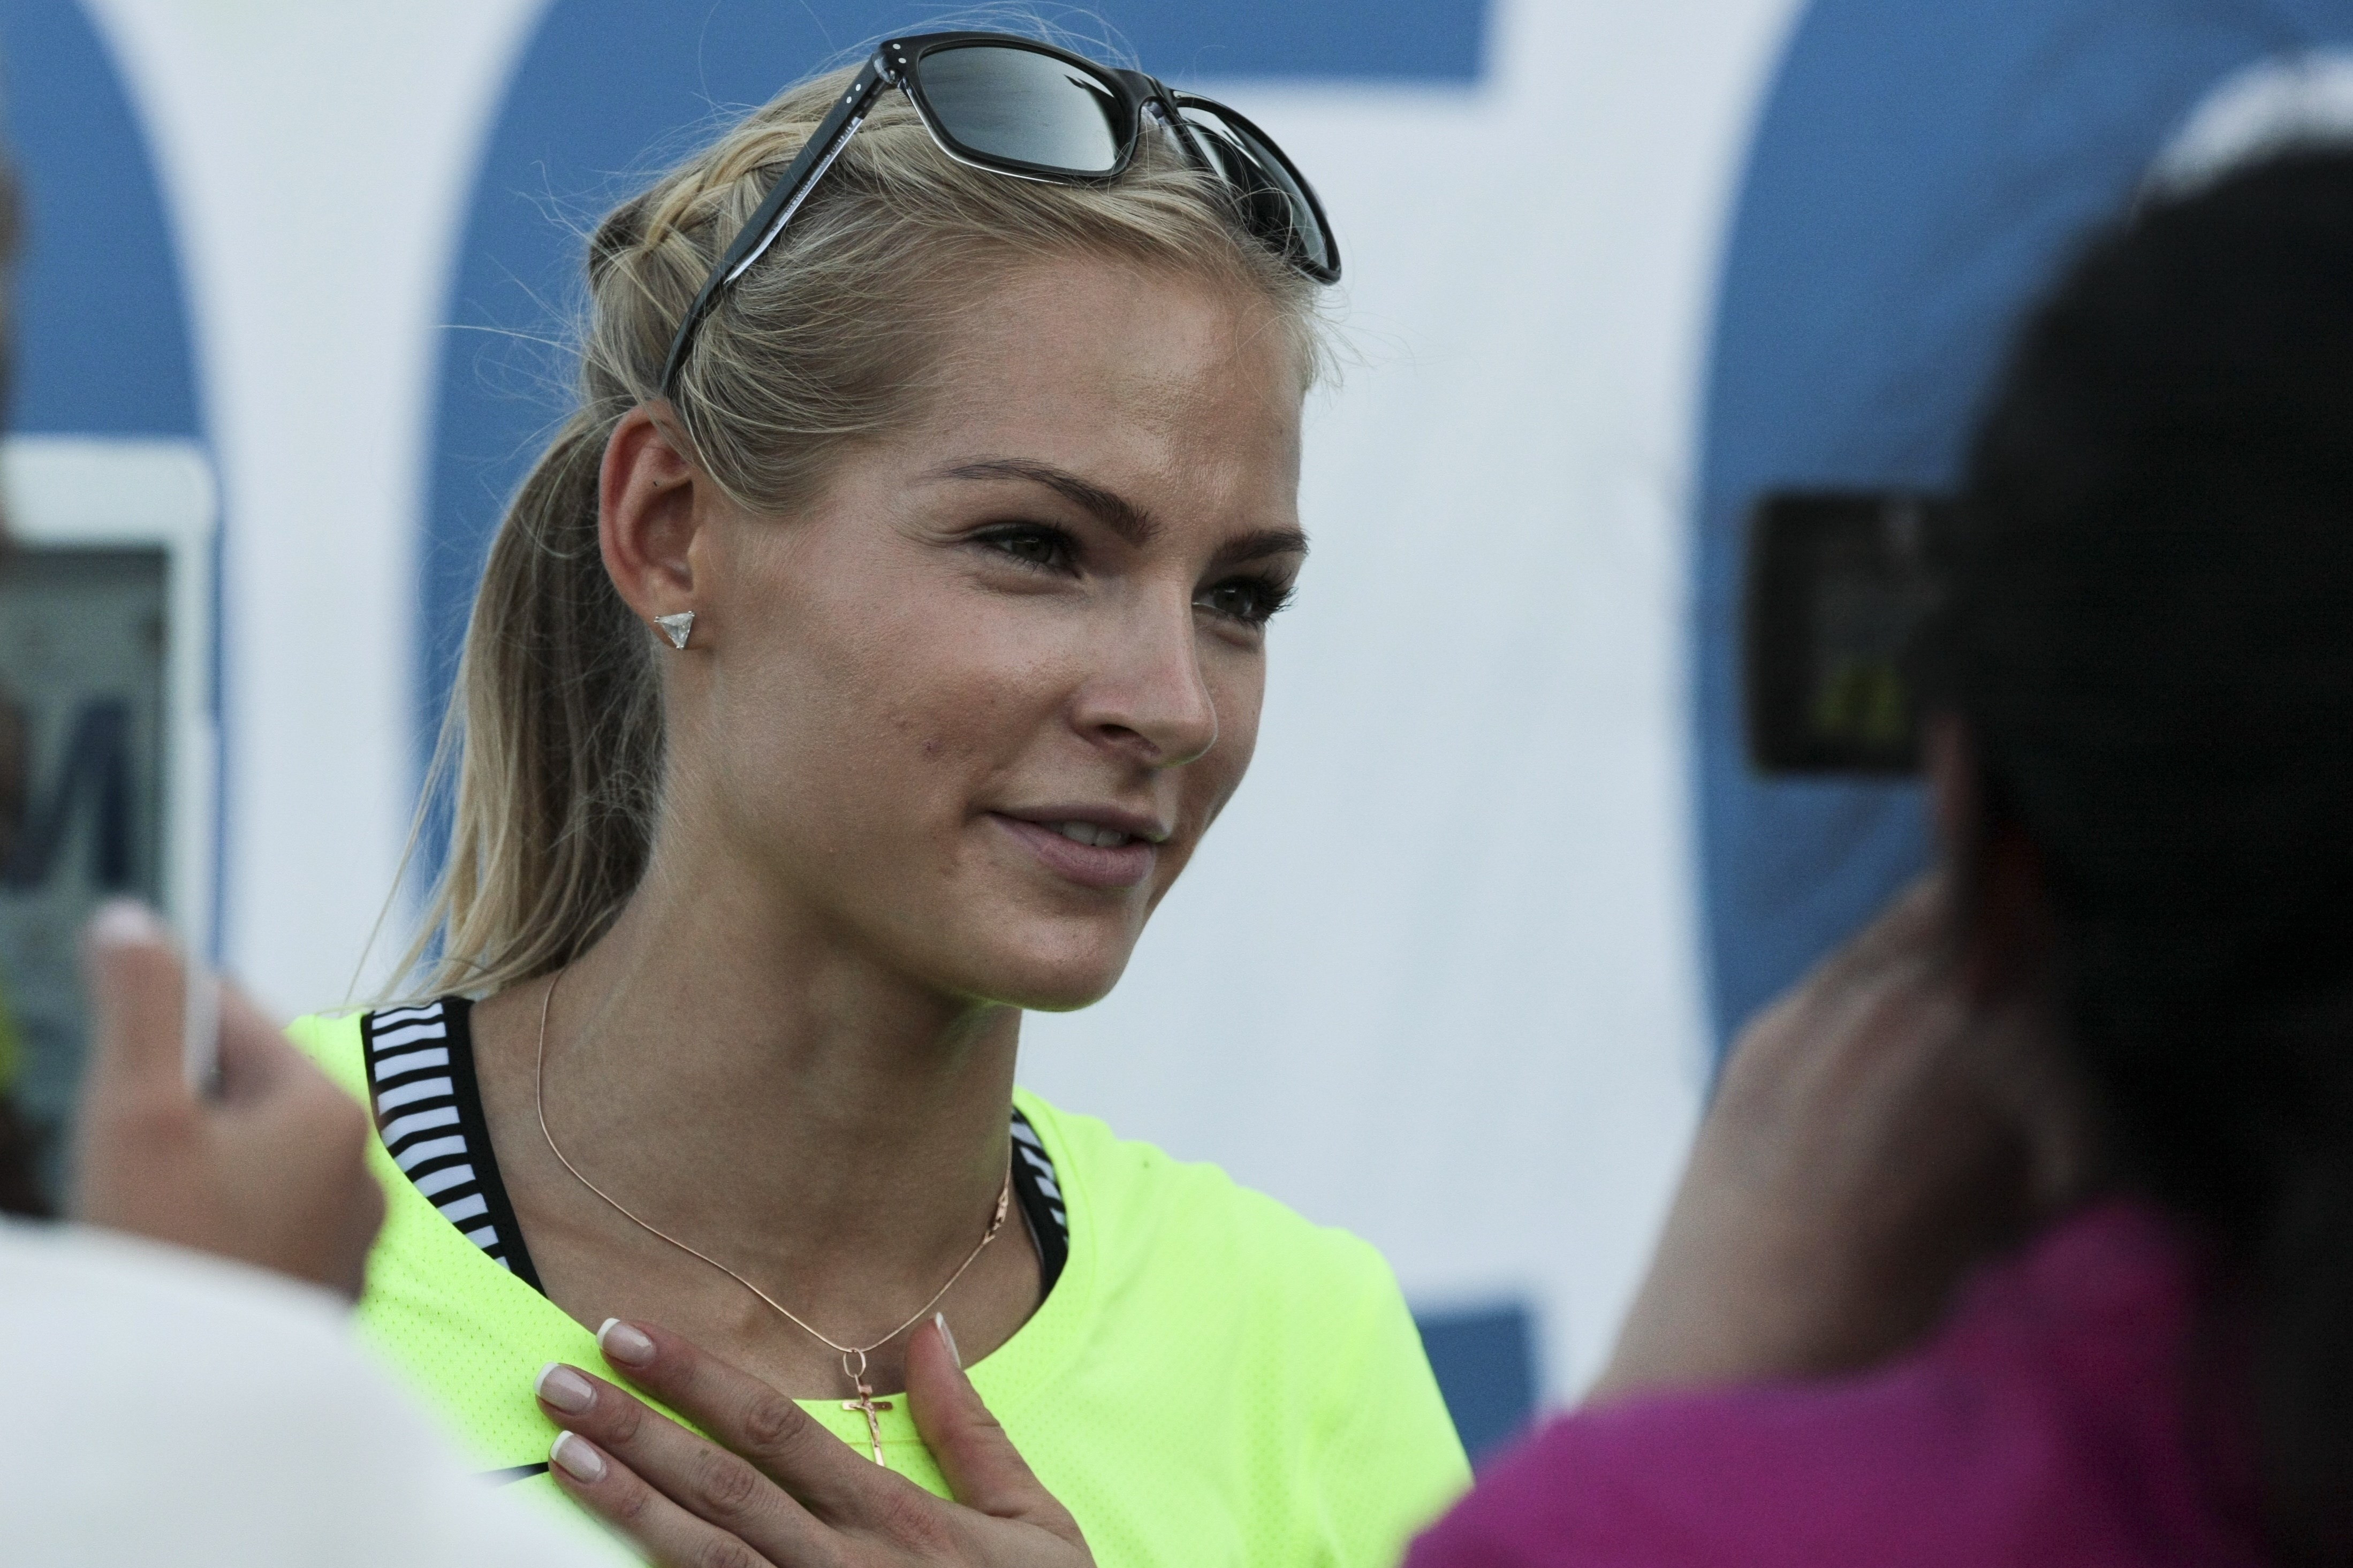 FILE - In this June 20, 2016 file photo, Russia's long jumper Darya Klishina speaks at the national track and field championship in Cheboksary, Russia. Klishina is the only athlete who met the standards when track's governing body, the IAAF, banned the Ru